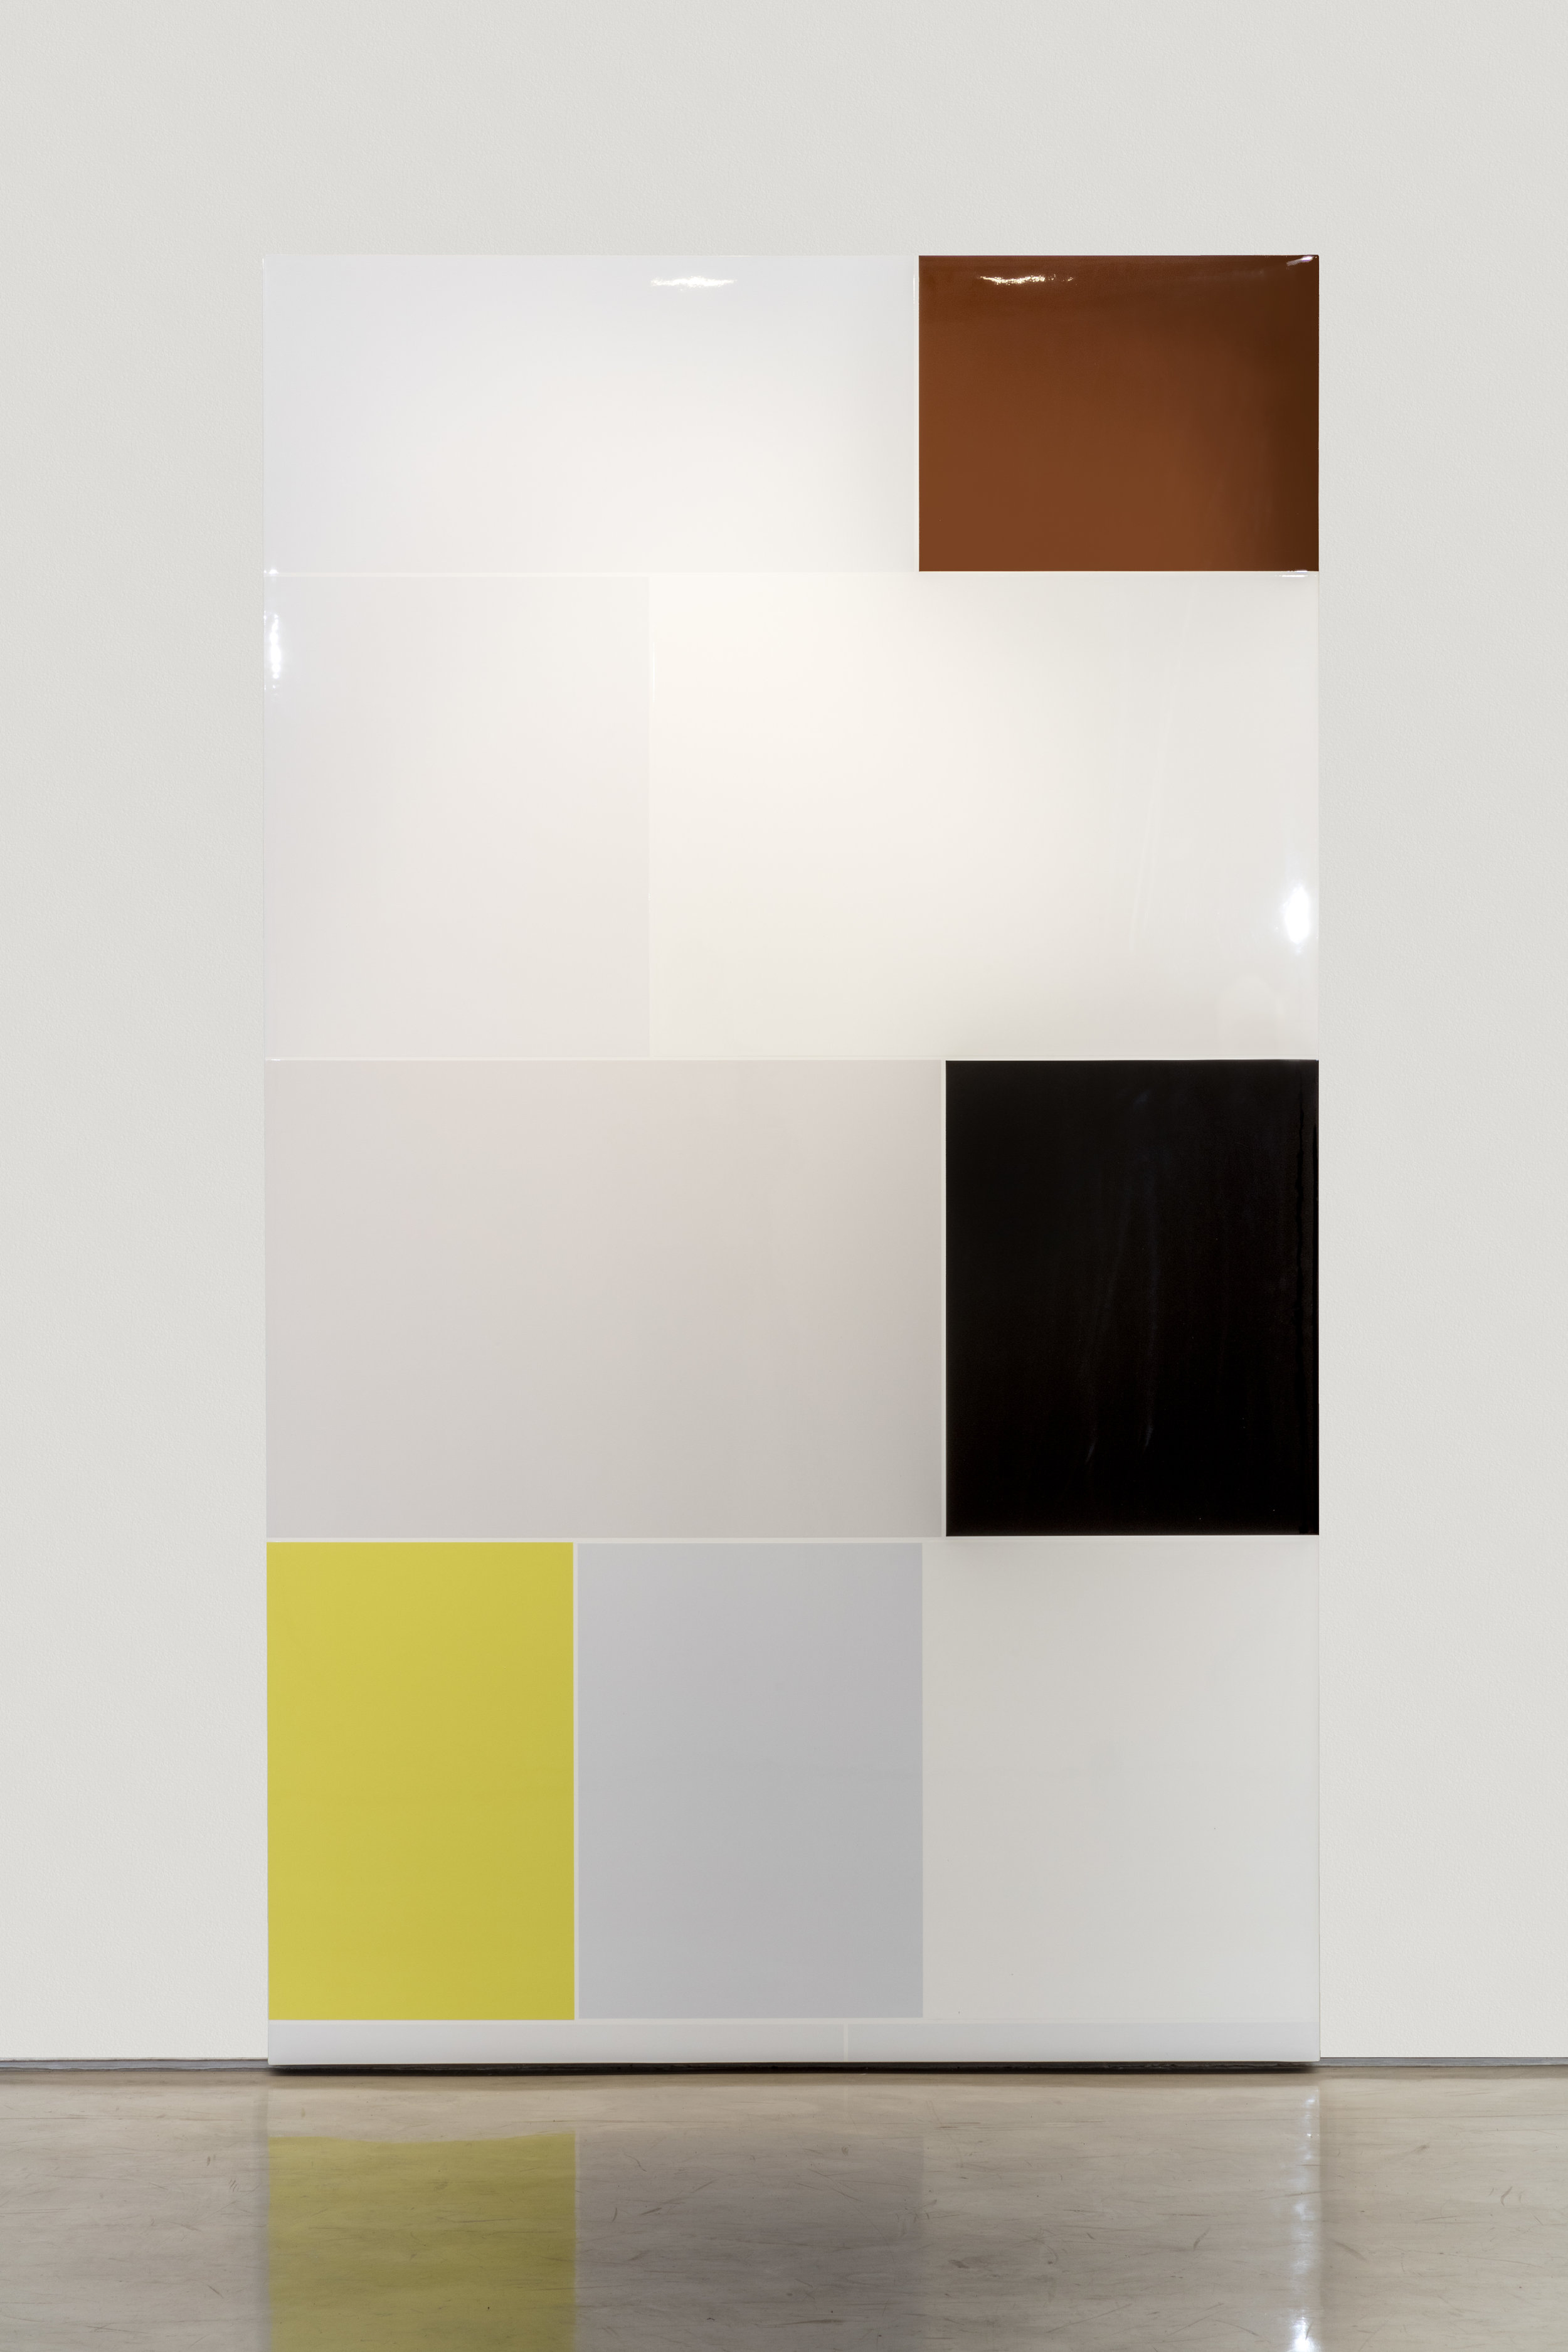 Image search: Confessions, Polished urethane on gessoed canvas, 96 X 56 inches, 2015